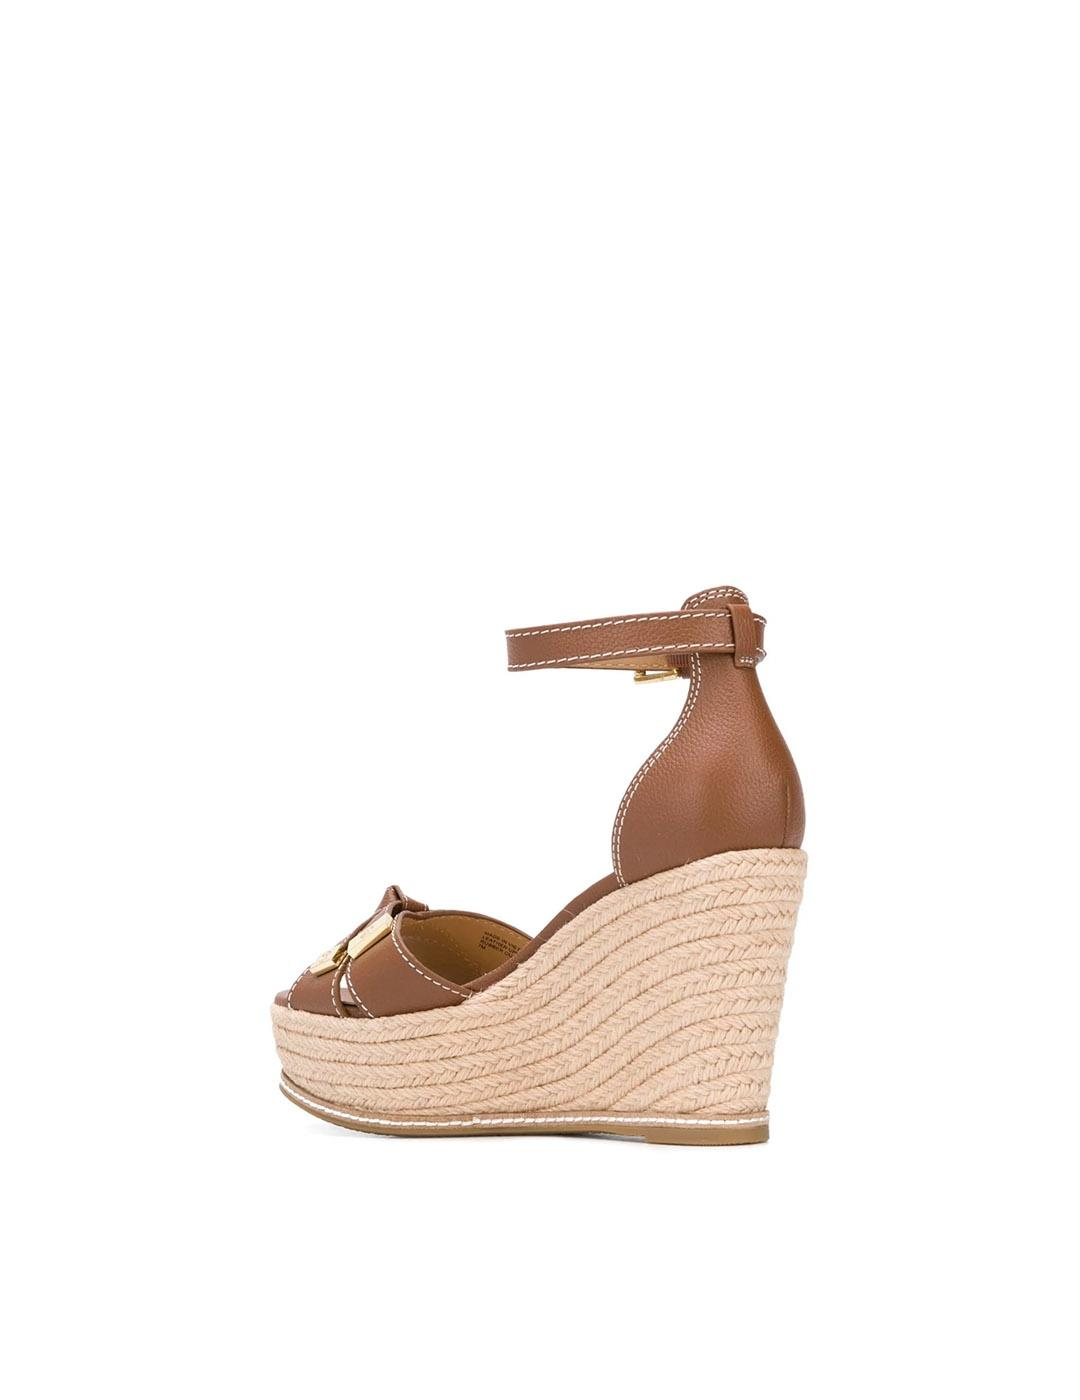 Sandalias Michael Kors marrón Ripley Wedge Luggage